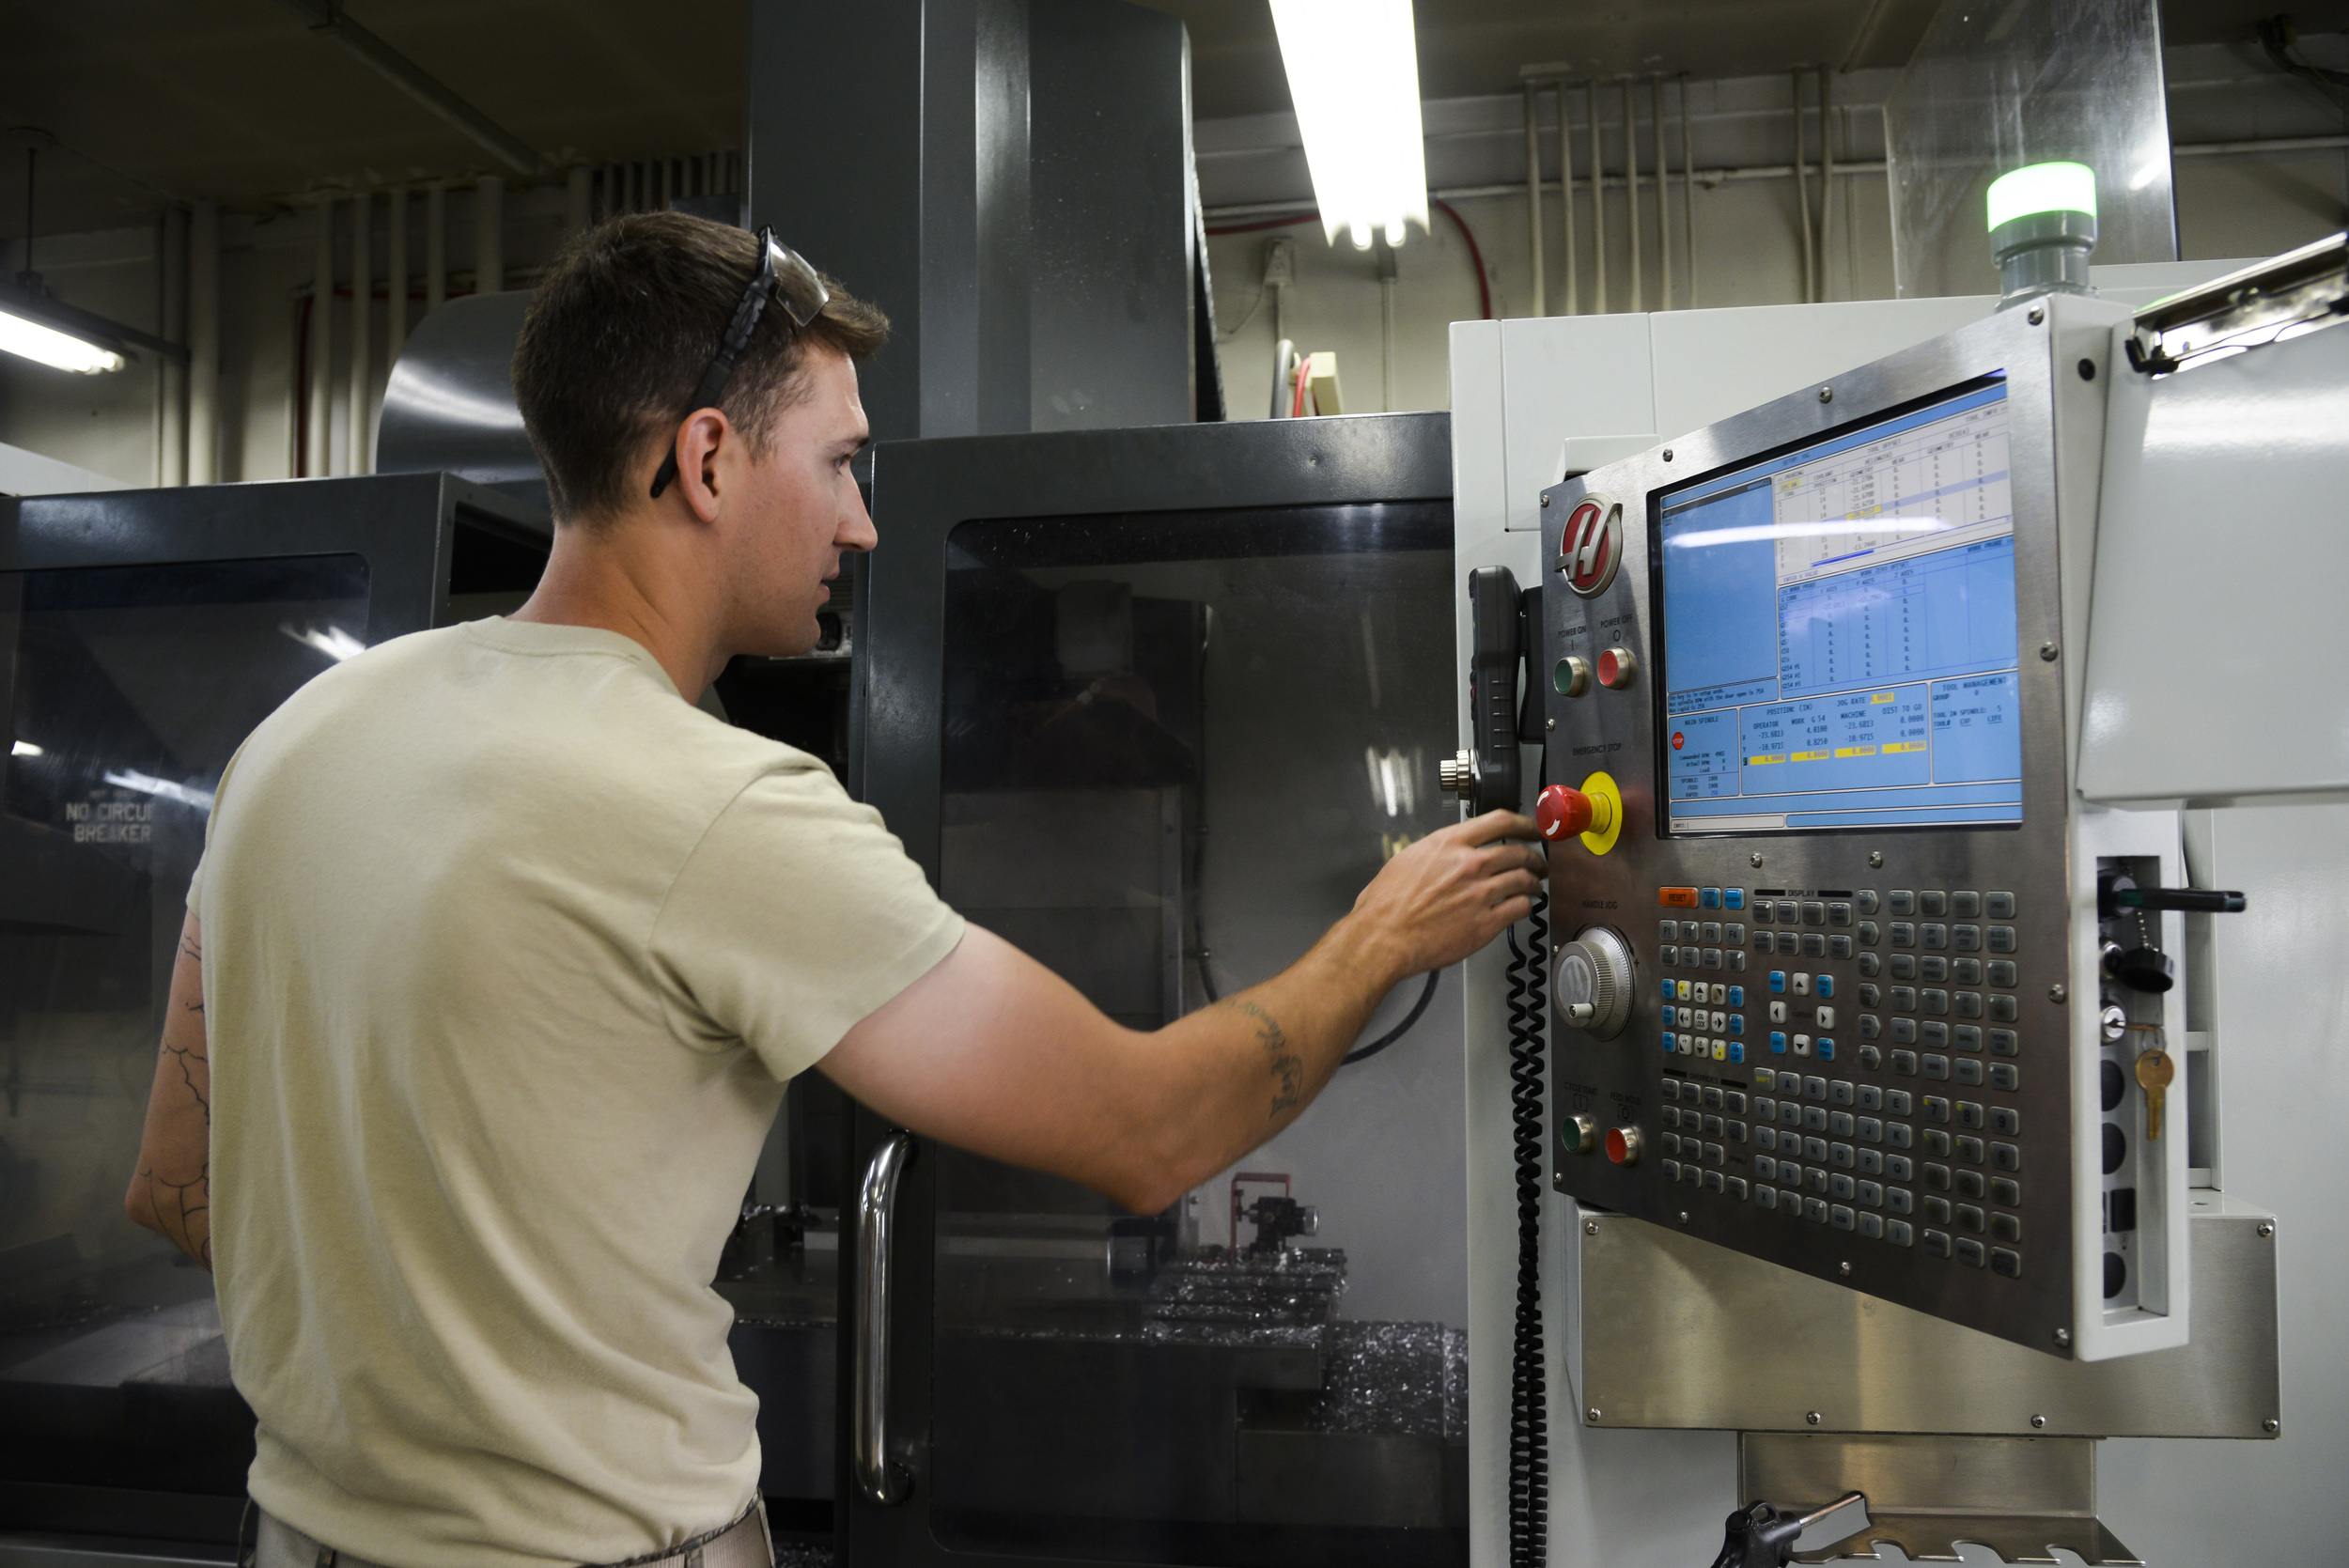 Senior Airman Justin Weeks, 374th Maintenance Squadron aircraft metals technology journeyman, inputs information into the computer numeric controller router to create a C-130 Hercules part in the fabrication shop at Yokota Air Base, Japan, June 23, 2015. Numerical control is the automation of machine tools that are operated by precisely programmed commands encoded on a storage medium. (U.S. Air Force photo by Senior Airman David Owsianka/Released)